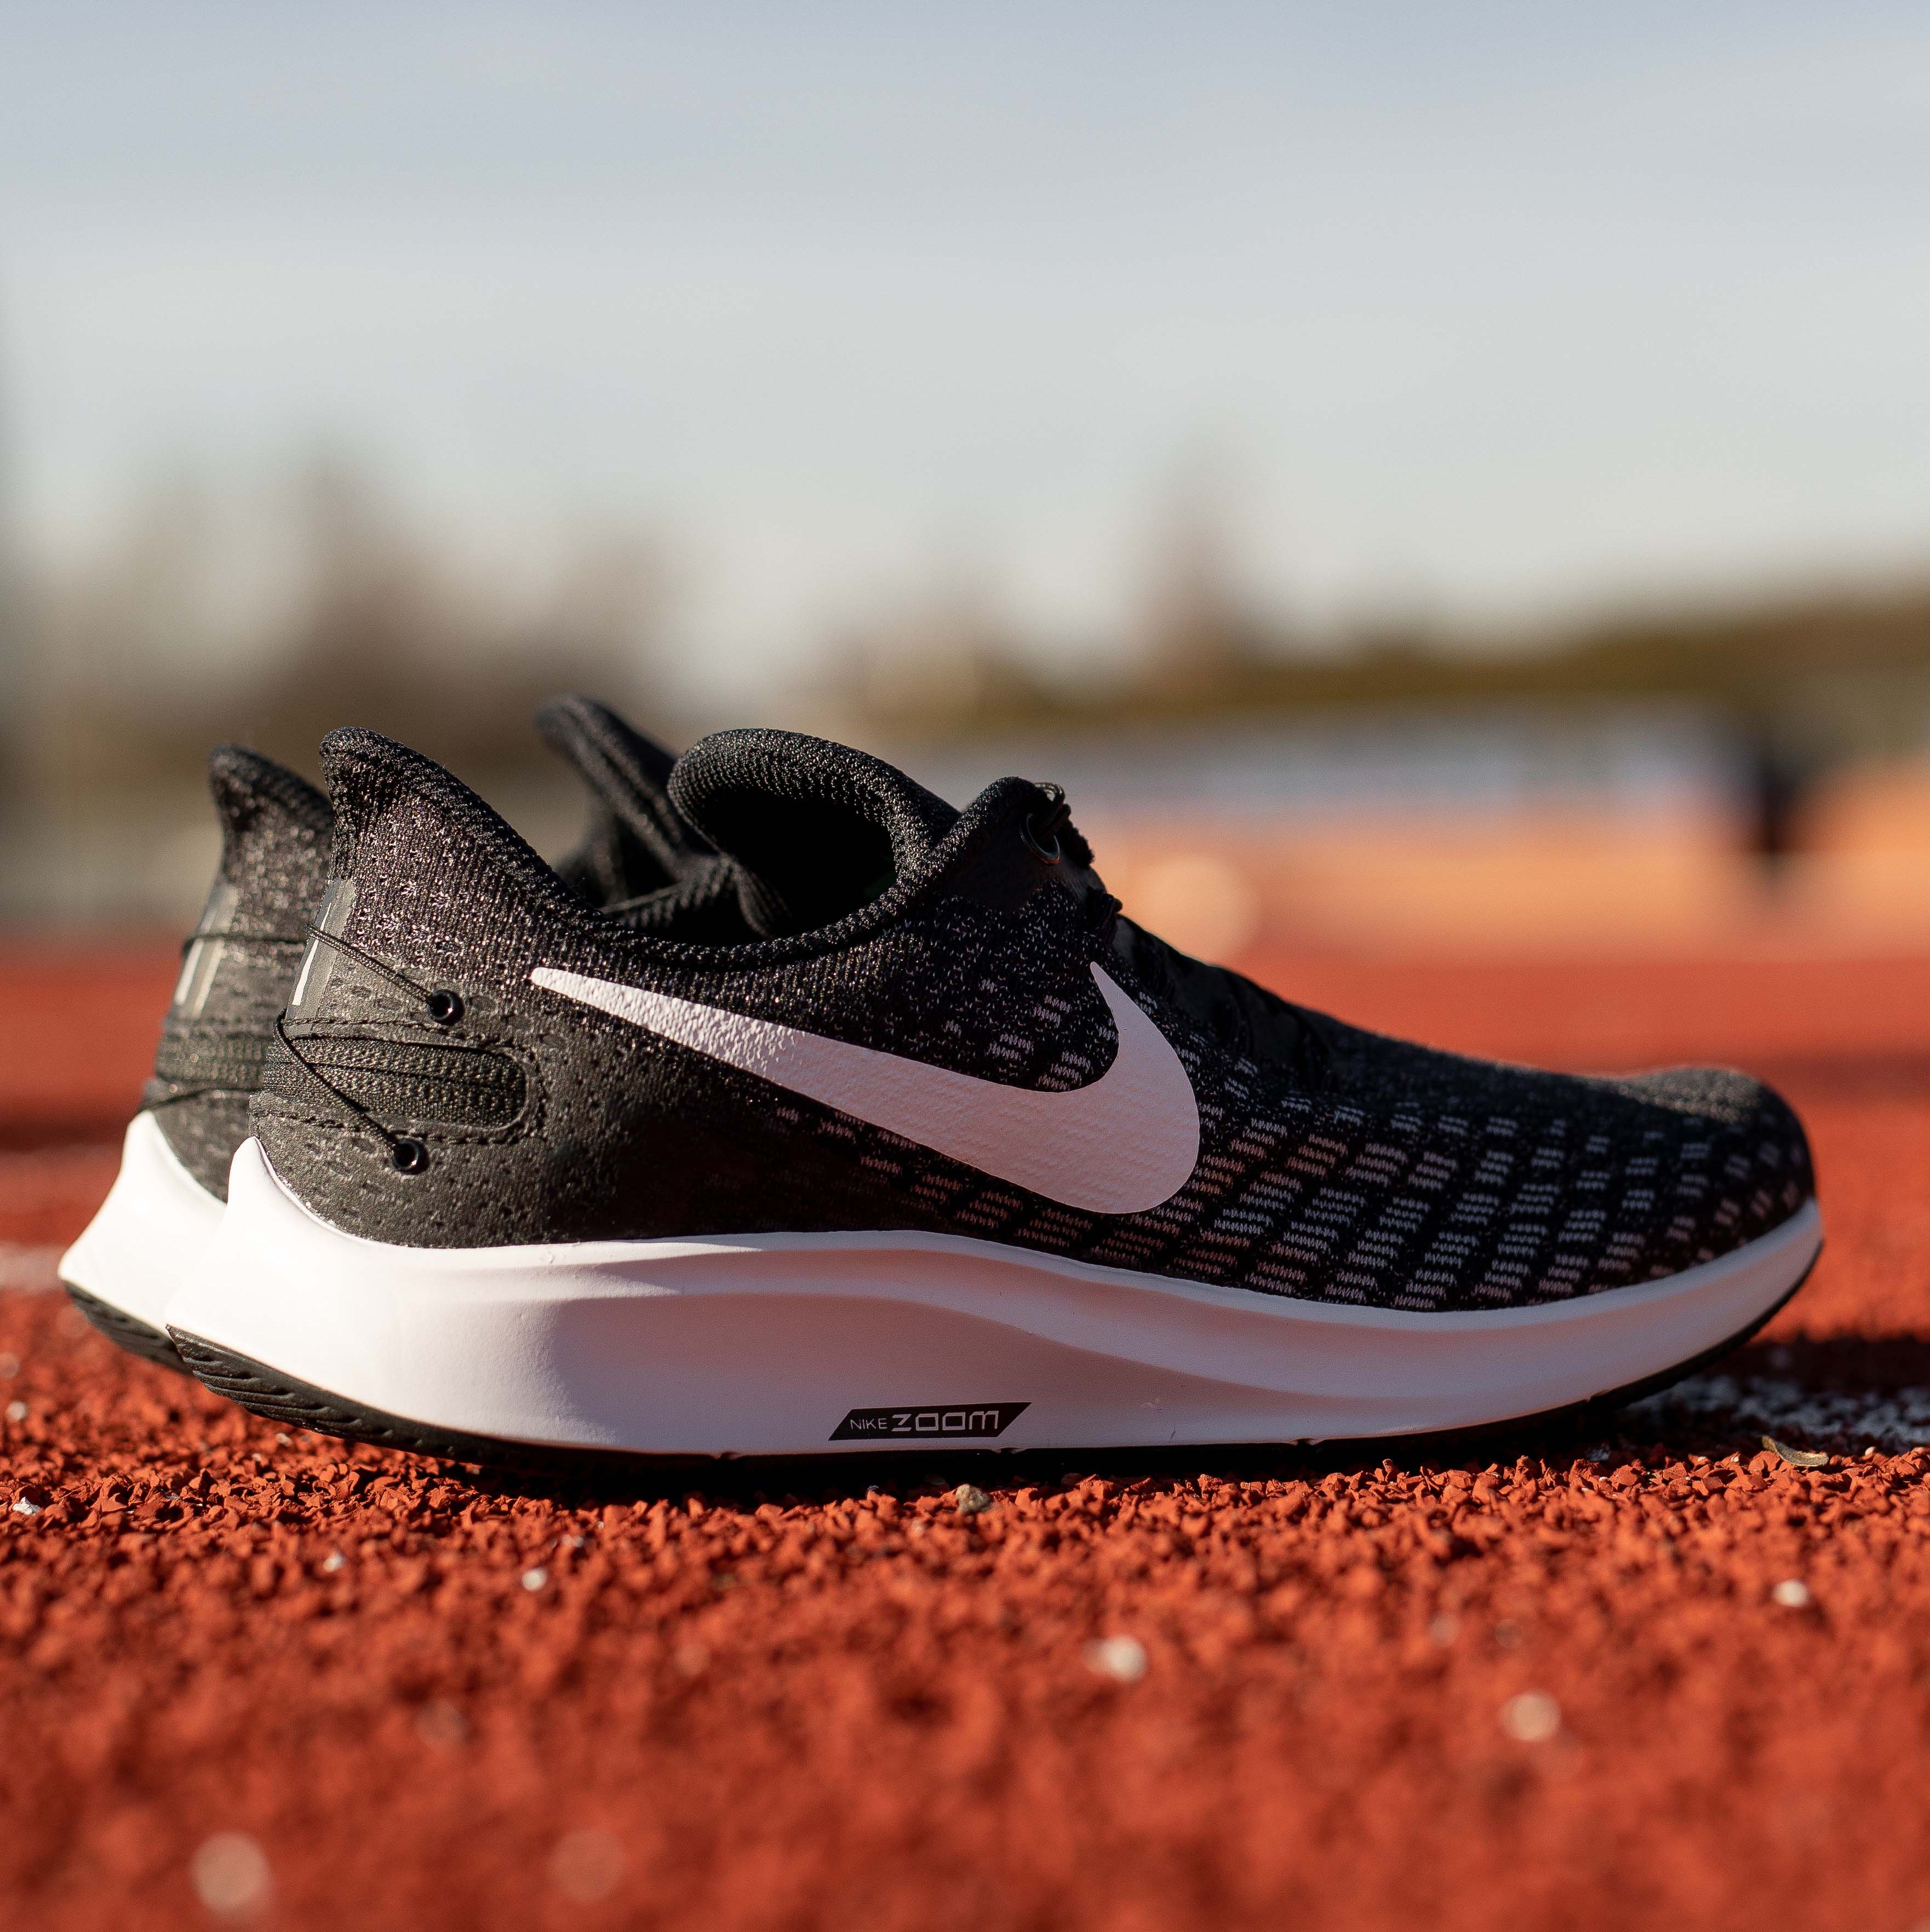 The new Nike shoe designed for disabled athletes